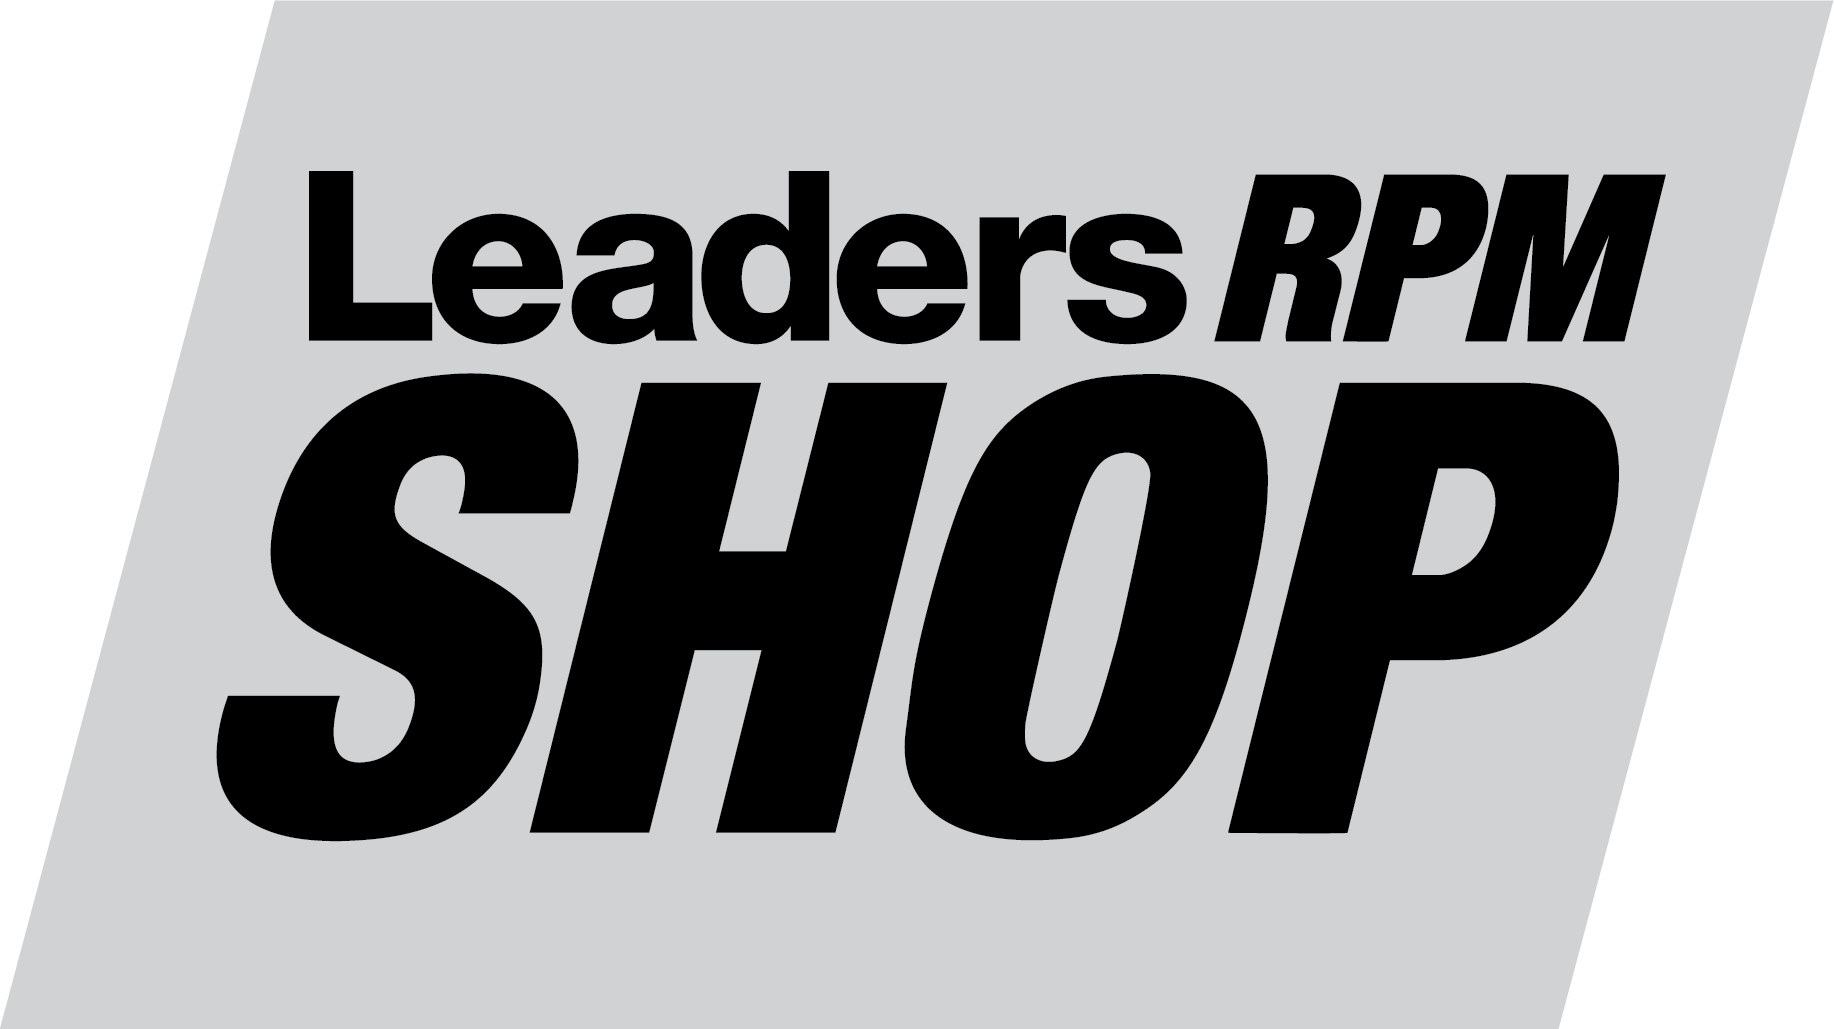 Leaders RPM Shop